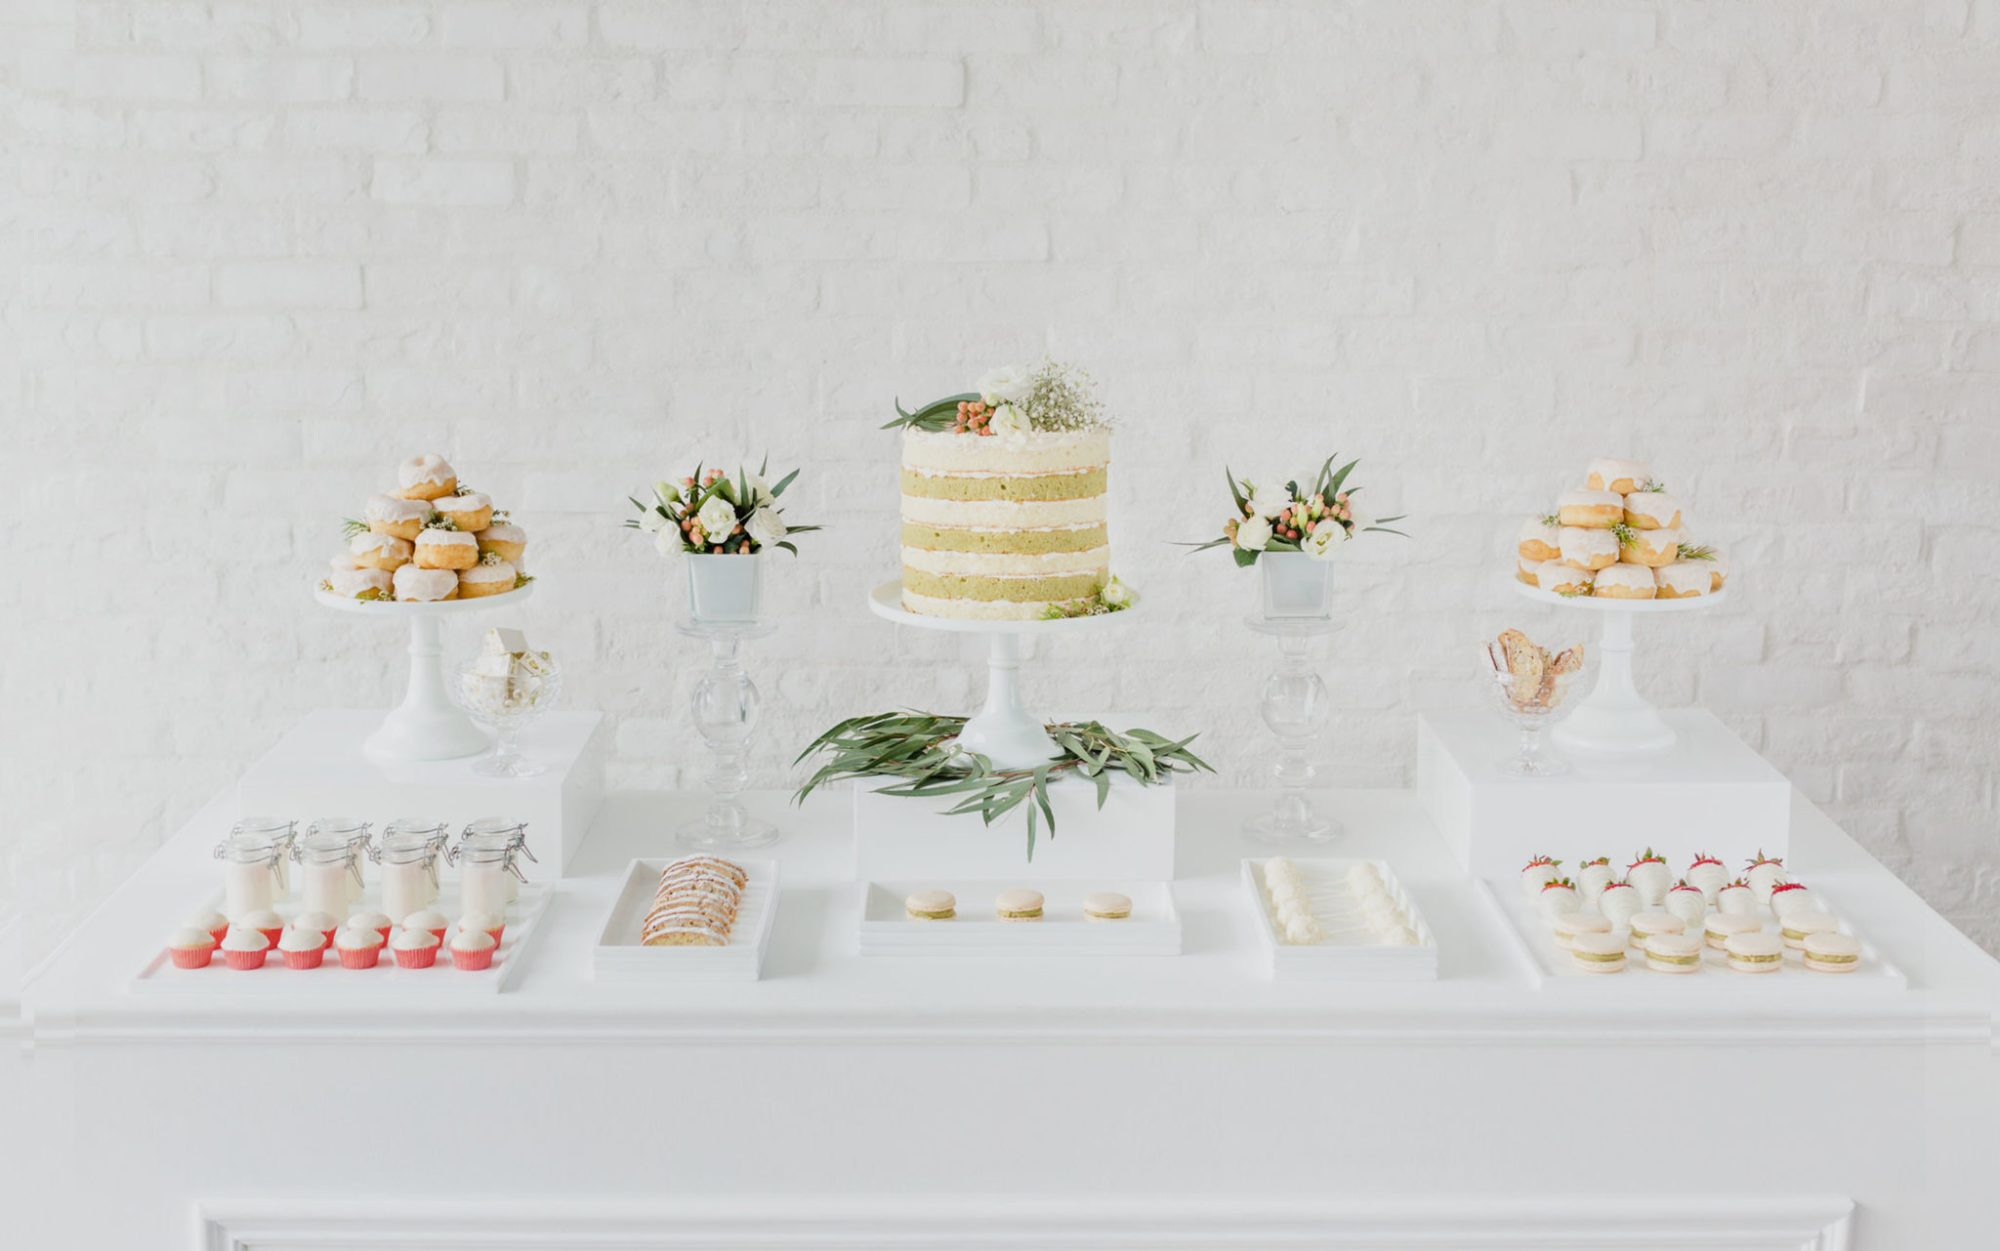 Dessert table from a wedding catered by Ristorante Beatrice.